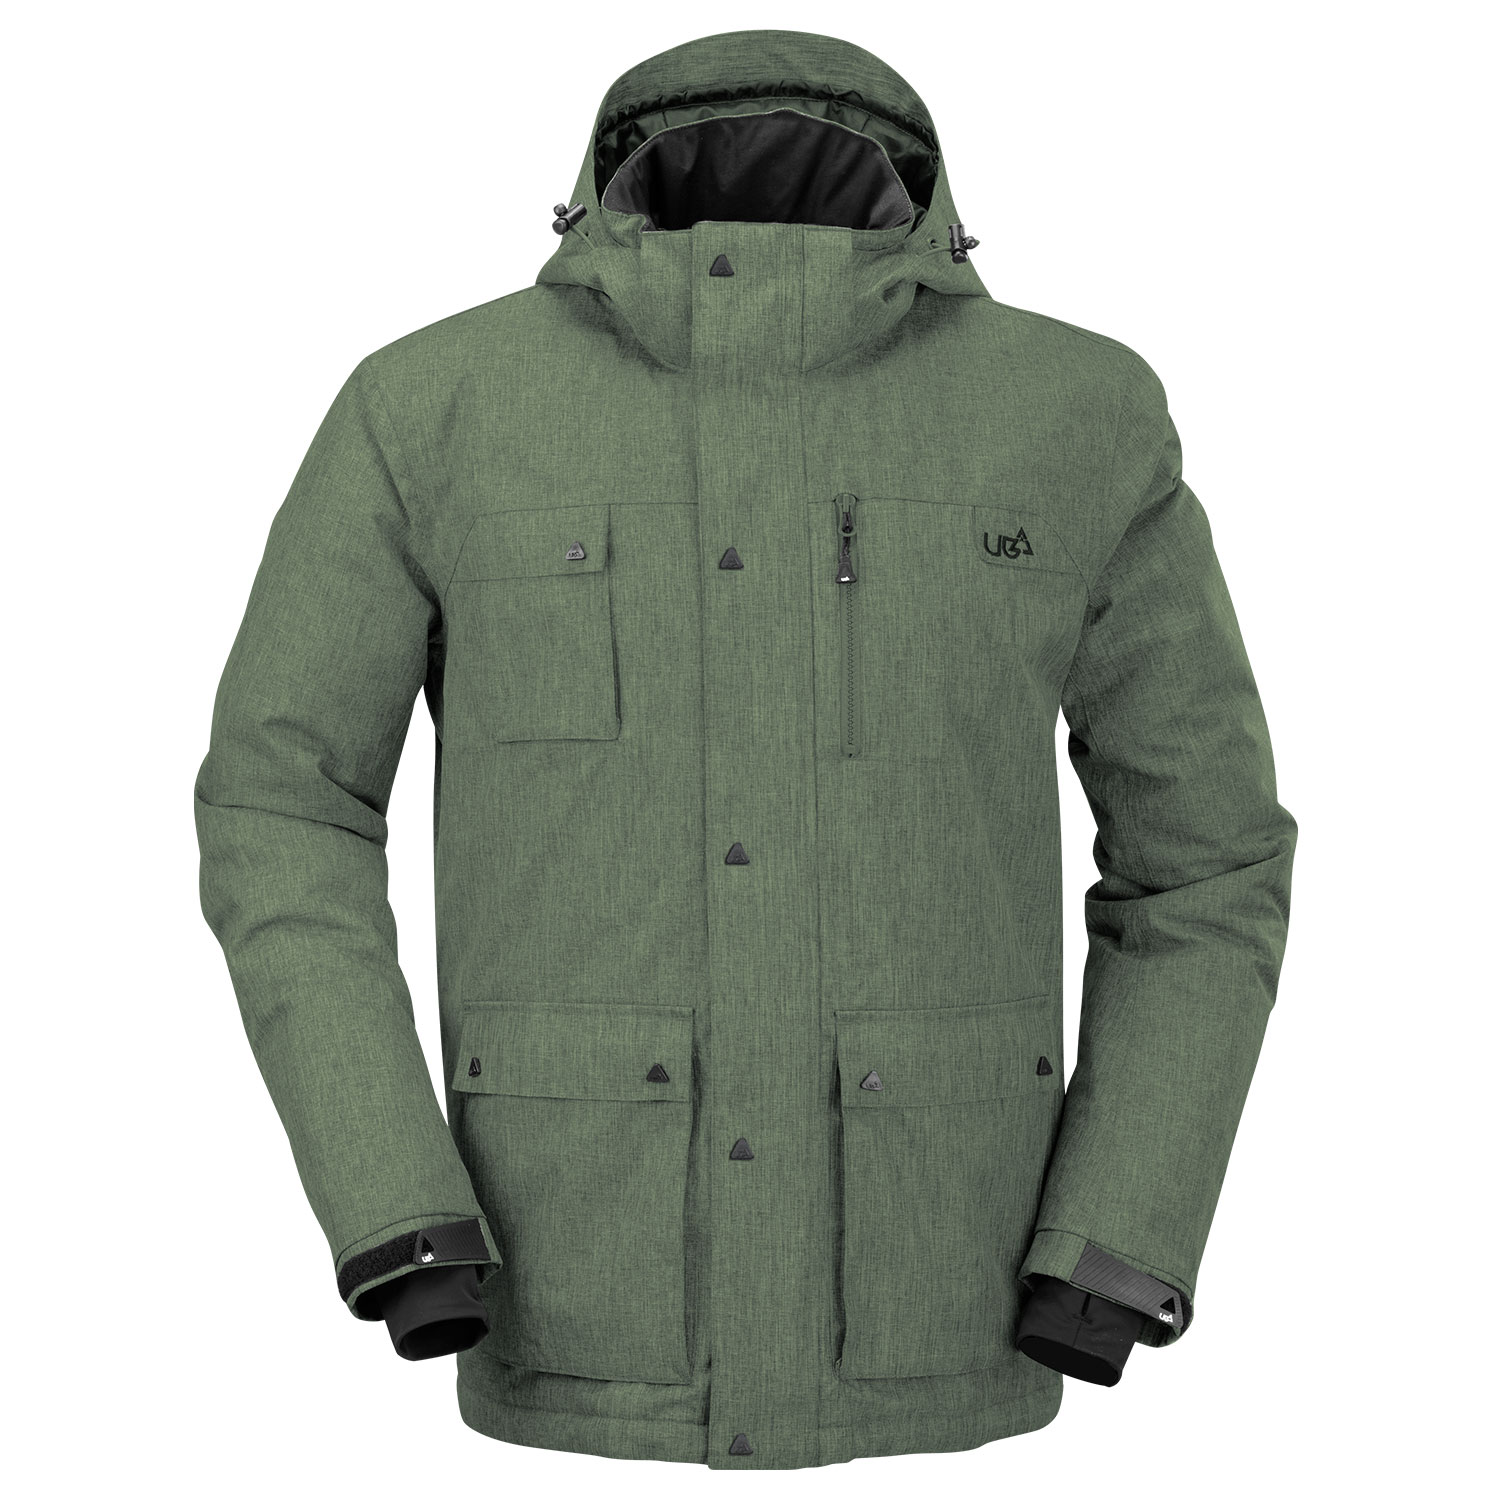 11 Stormproof Men's Ski Jackets for Snowy Days on the Slopes. Winter is not an excuse to stay indoors, especially when you're somewhere with mountains! Buckle up your boots, throw on one of the best new men's ski jackets, jump onto your skis, and hit the slopes for some powder turns!